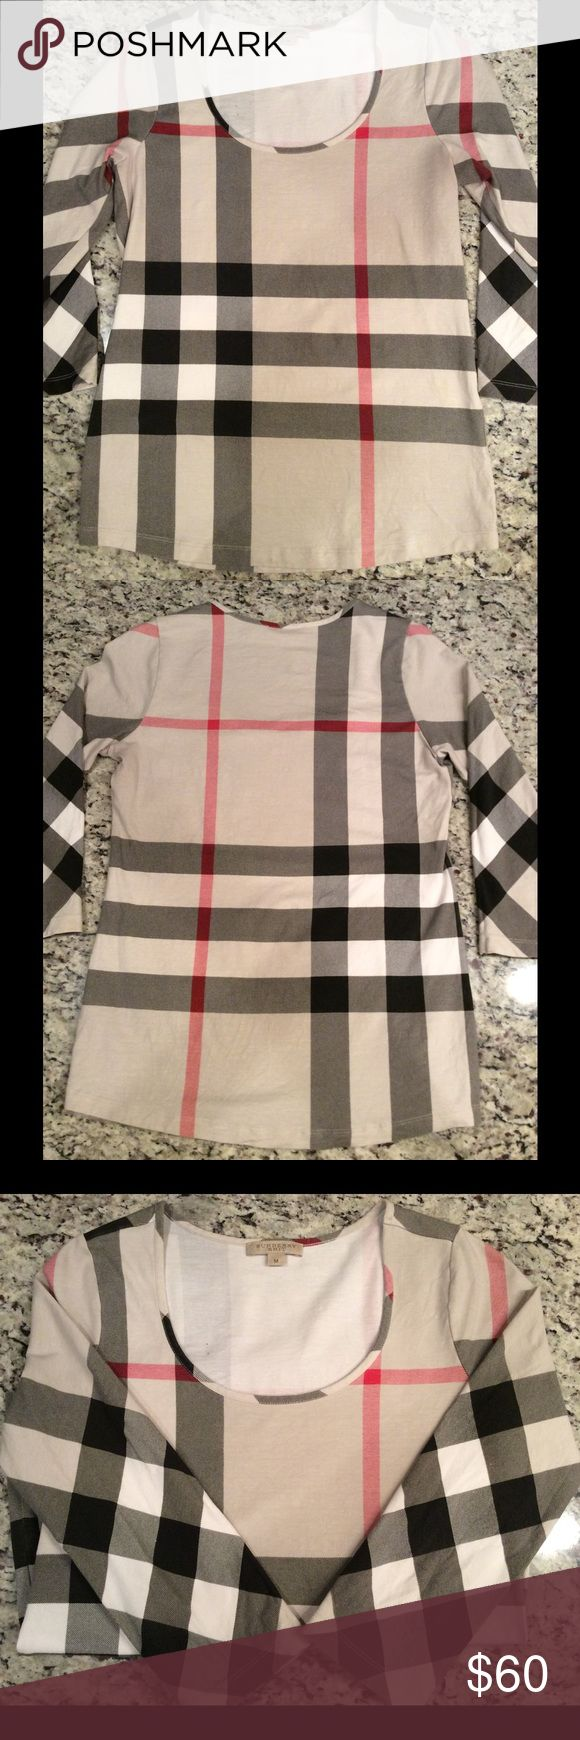 "-Burberry Brit- 3/4 Sleeve original Checker Sz M Used, but good condition! Care tag has fading. There are 2 small dots on the -Inside of shirt on back right shoulder. (See pictures). Can't be seen from outside. Fitted and has a nice stretch. 95% cotton, 5% elastin. Shoulder to hem 22"" armpit to armpit 15"" sleeve 24"" Tops"